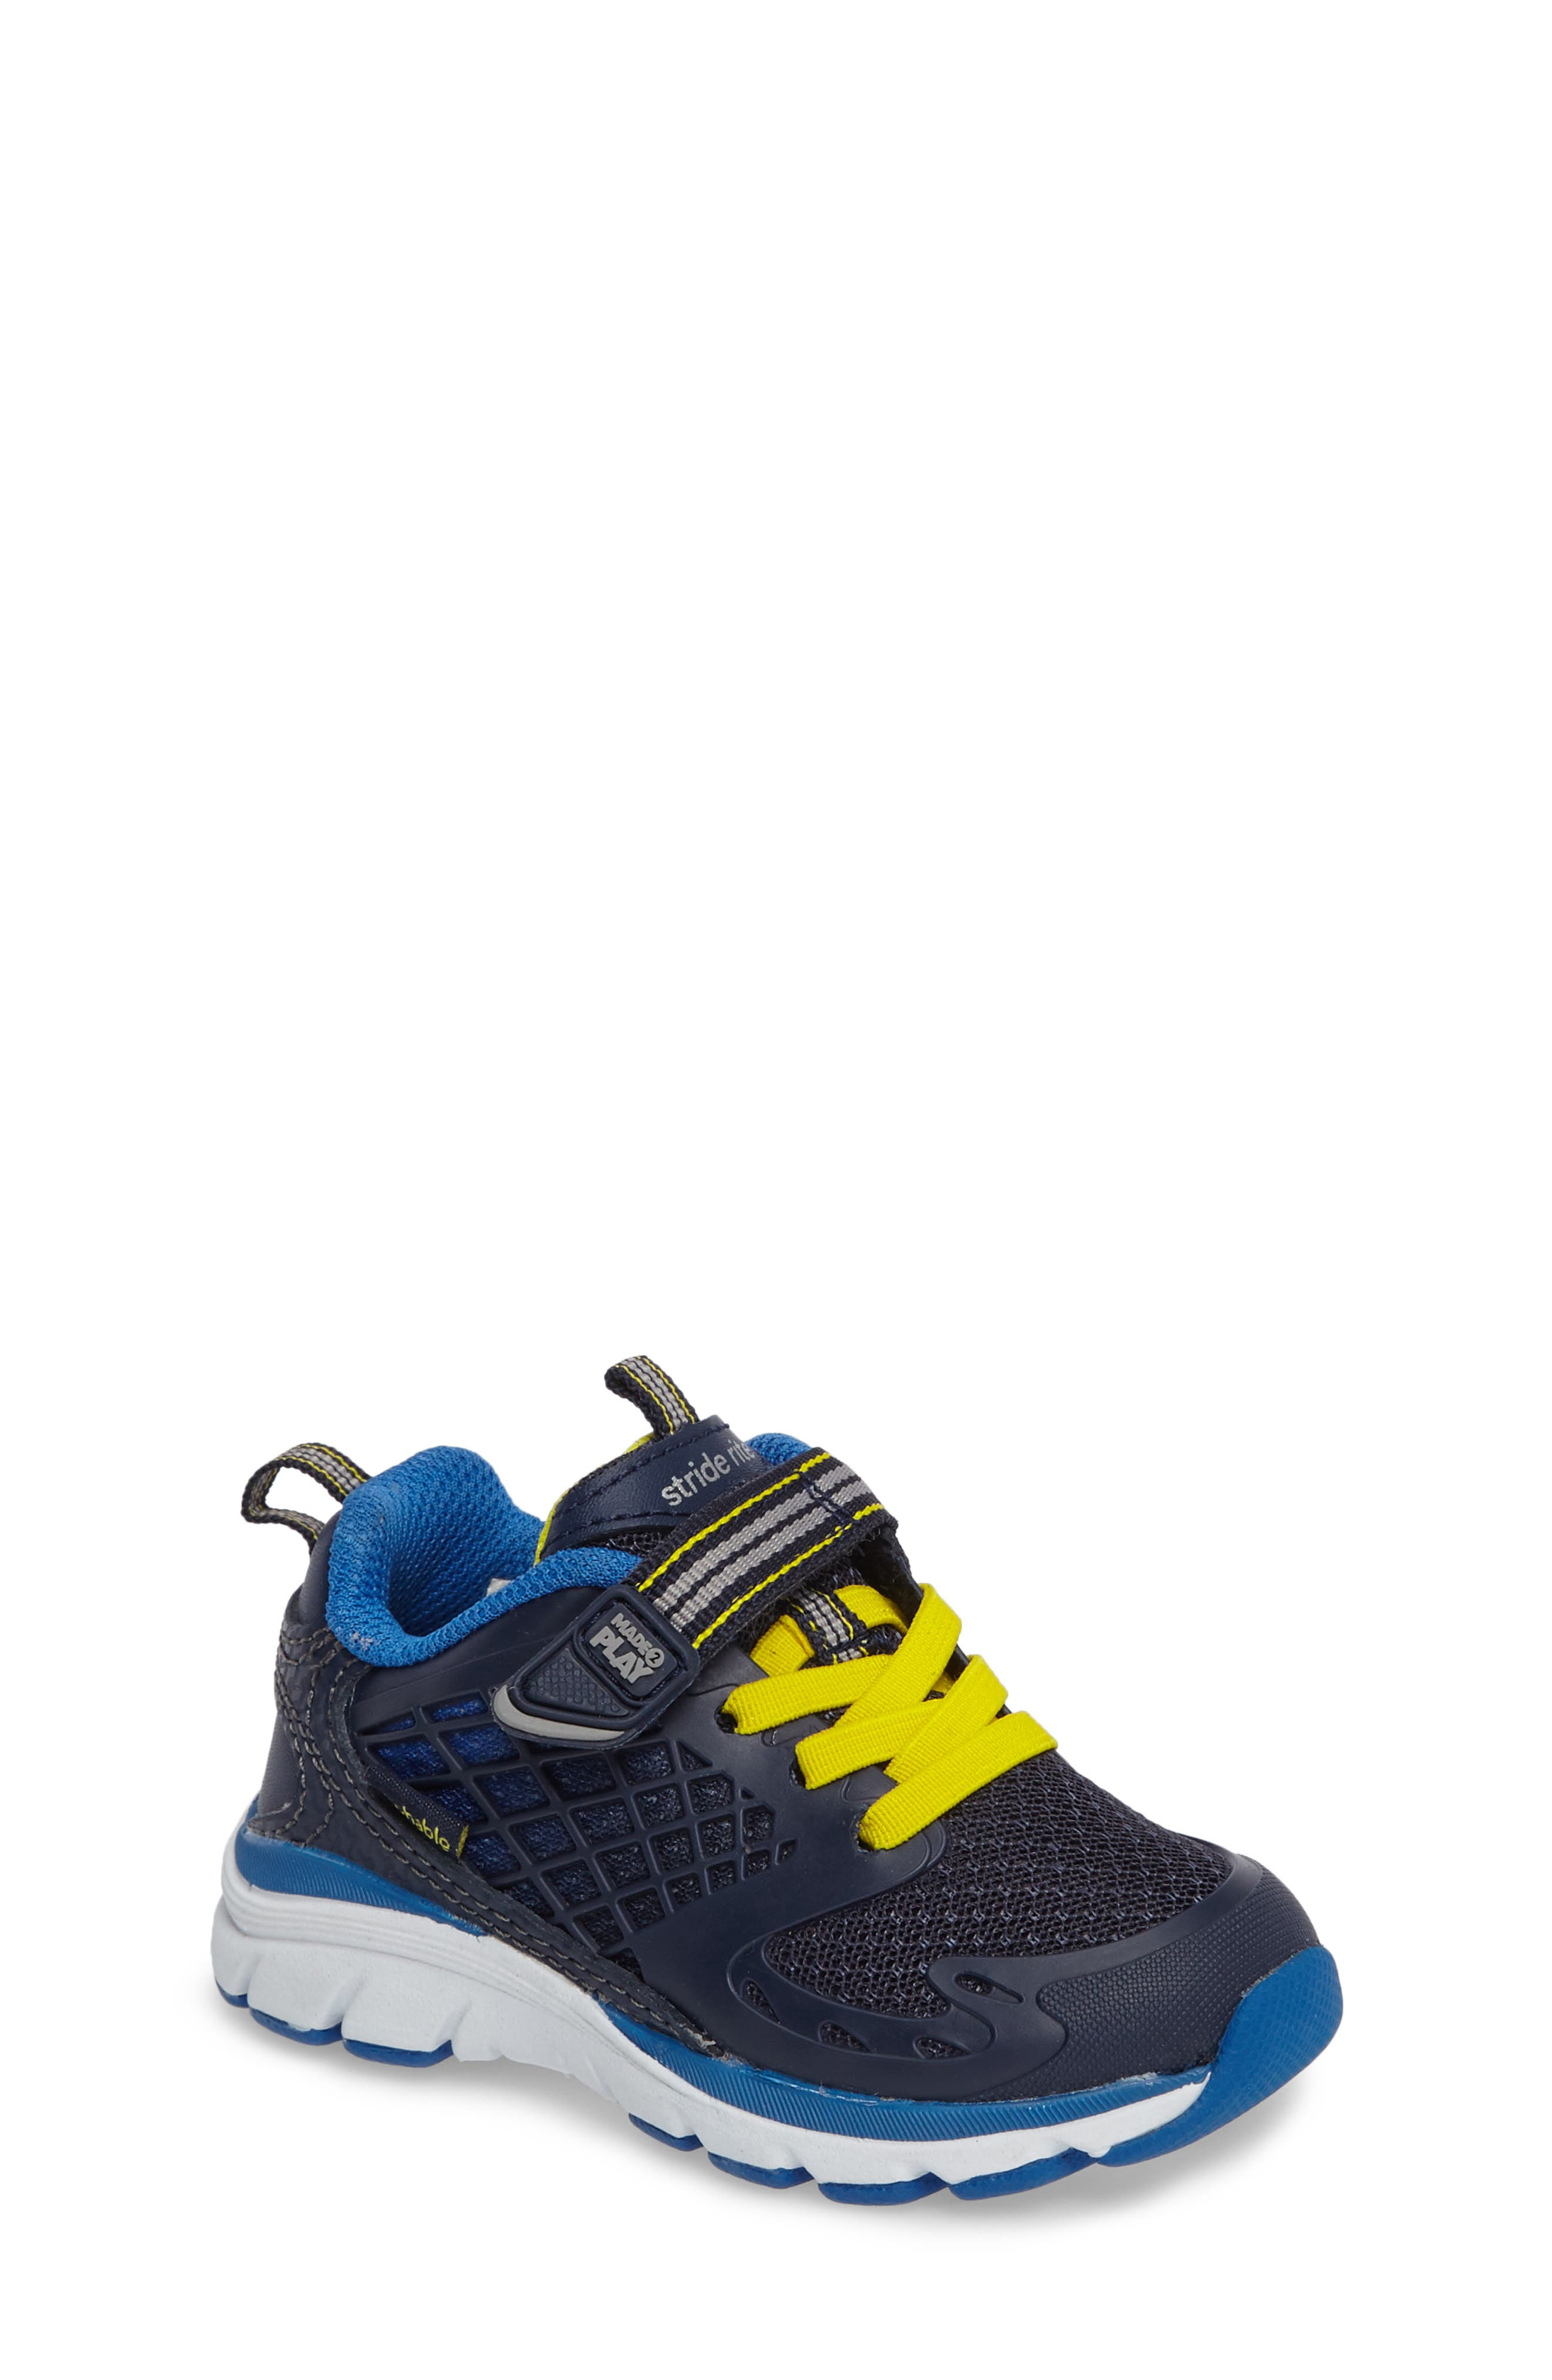 Main Image - Stride Rite Made 2 Play Breccen Sneaker (Baby, Walker, Toddler & Little Kid)